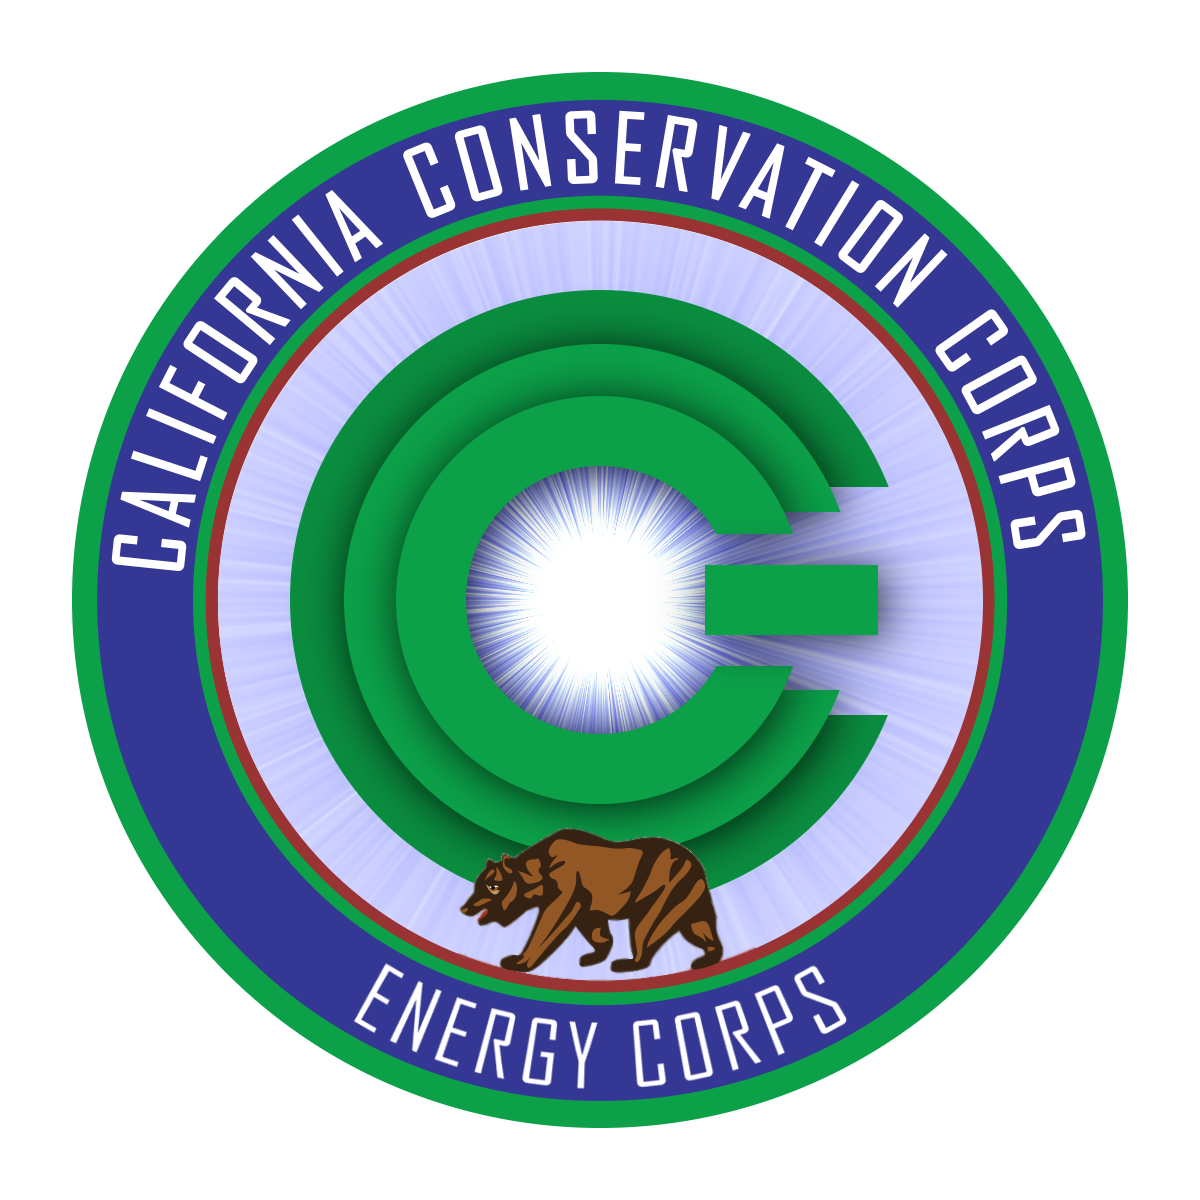 CCC Energy Corps logo. Reads: California Conservation Corps Energy Corps. Image depicts CCC as a computer power button, with light emanating from the center and a grizzly bear walking inside a circle.